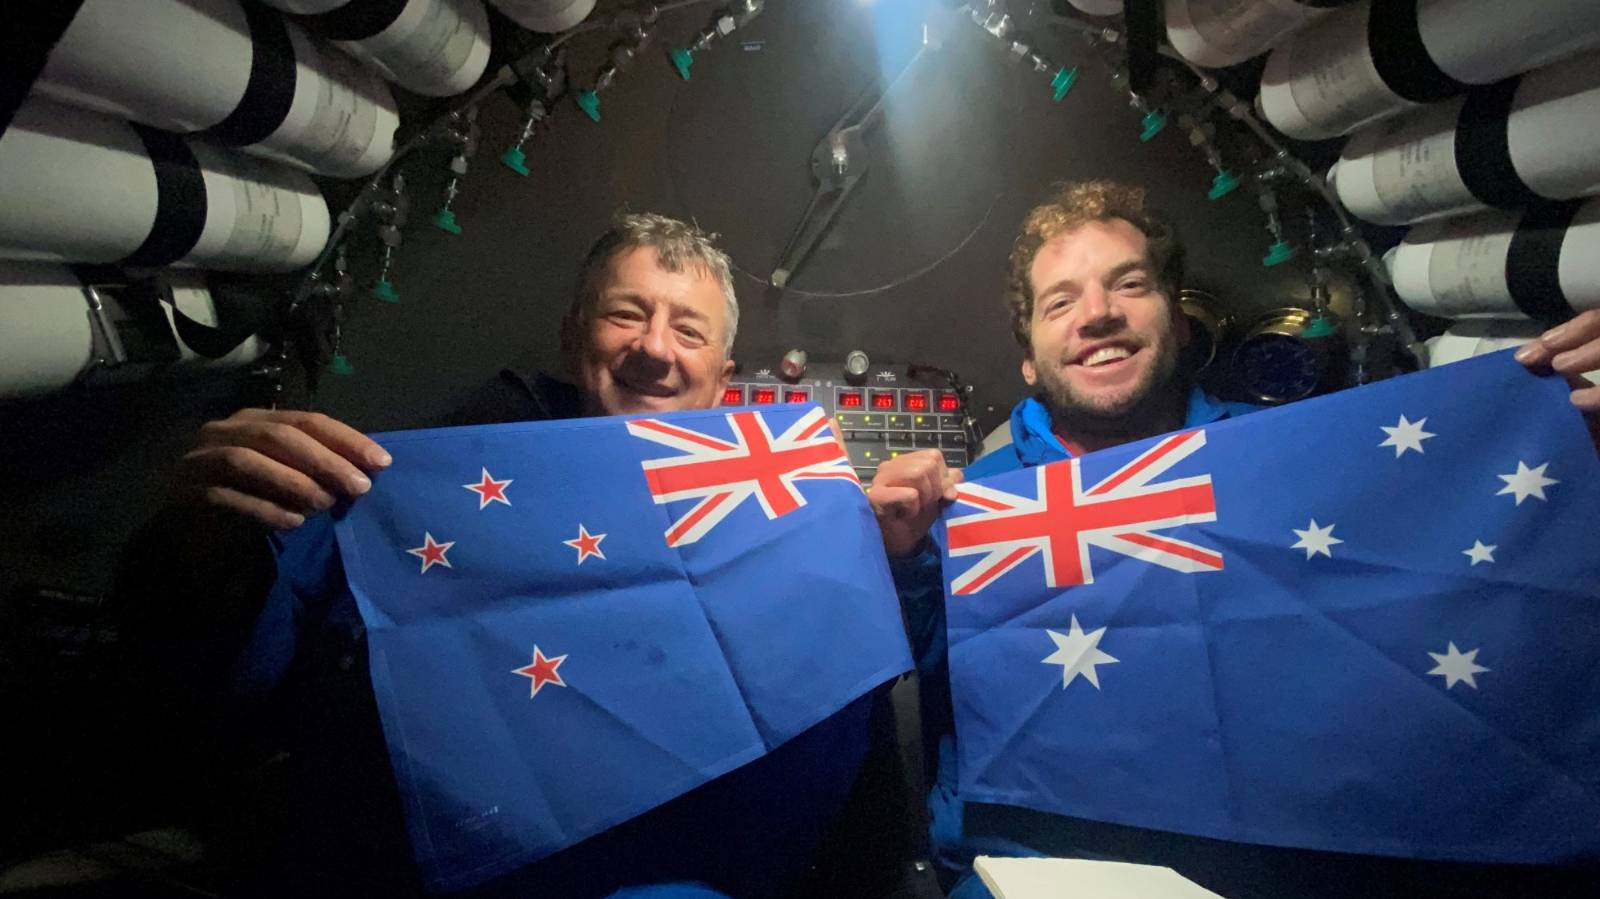 Kiwi and Aussie make history in the Mariana Trench with a Vegemite sandwich